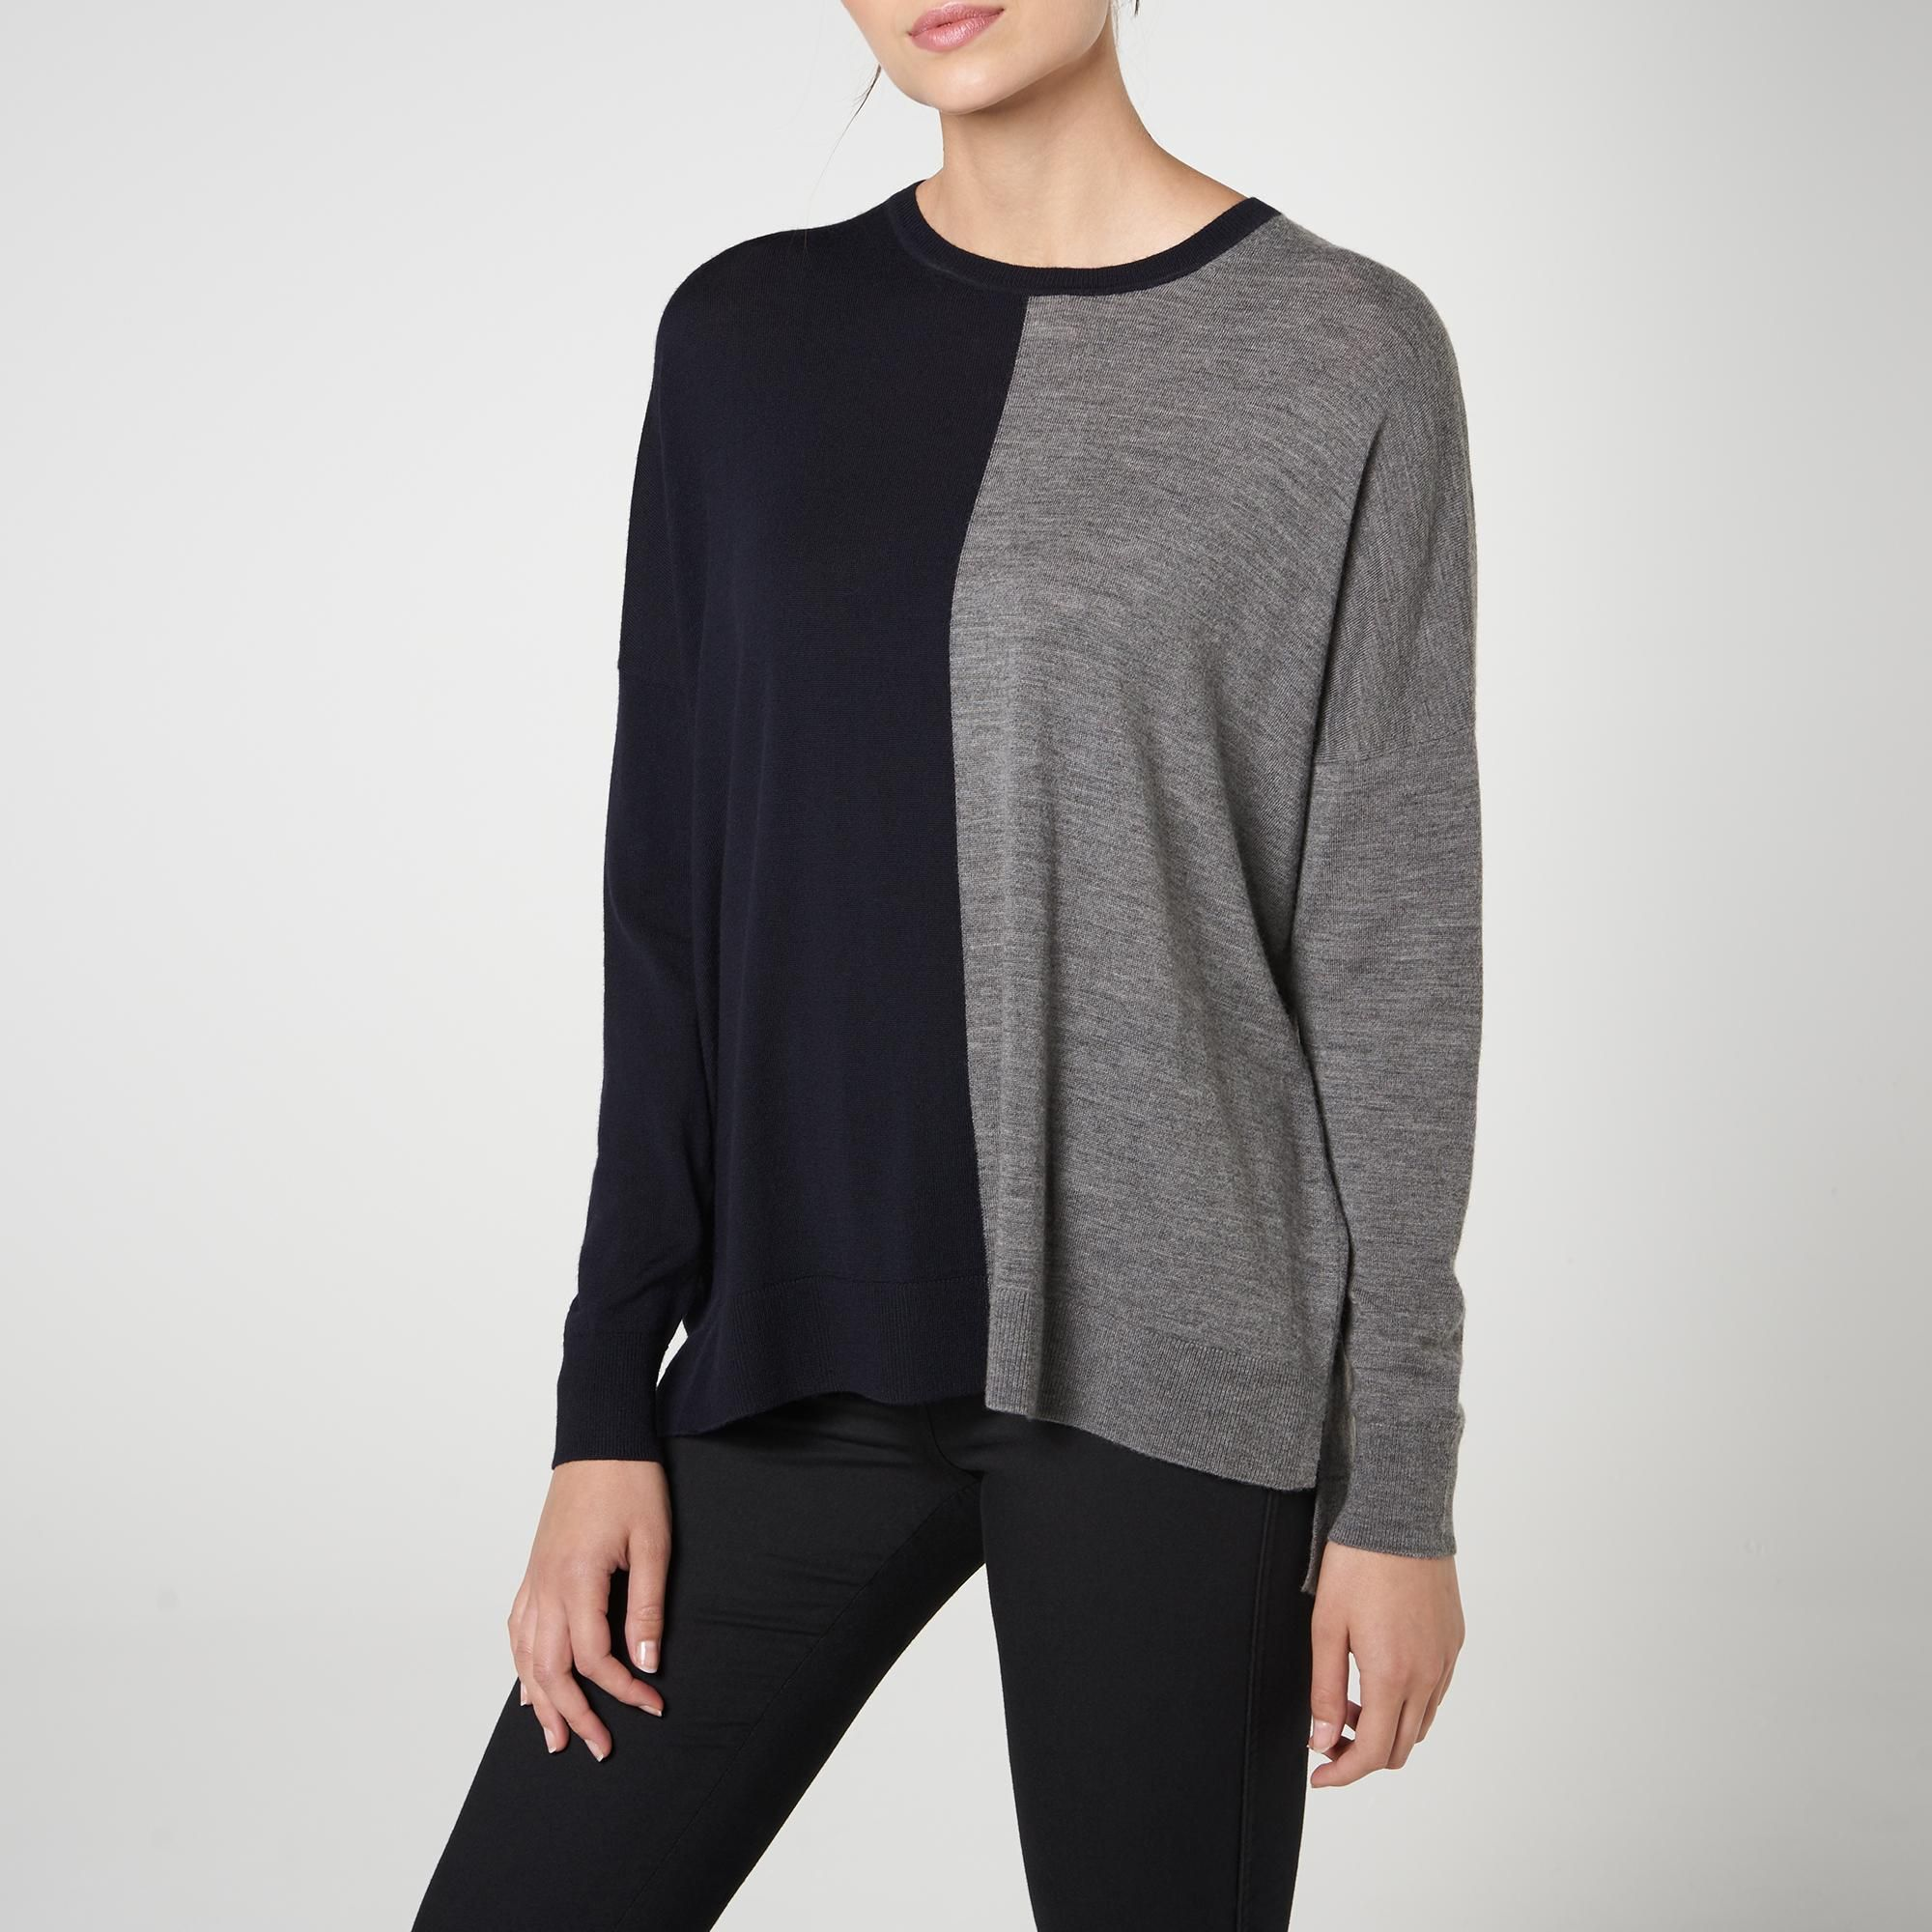 0472c9cb291 The best jumpers for winter